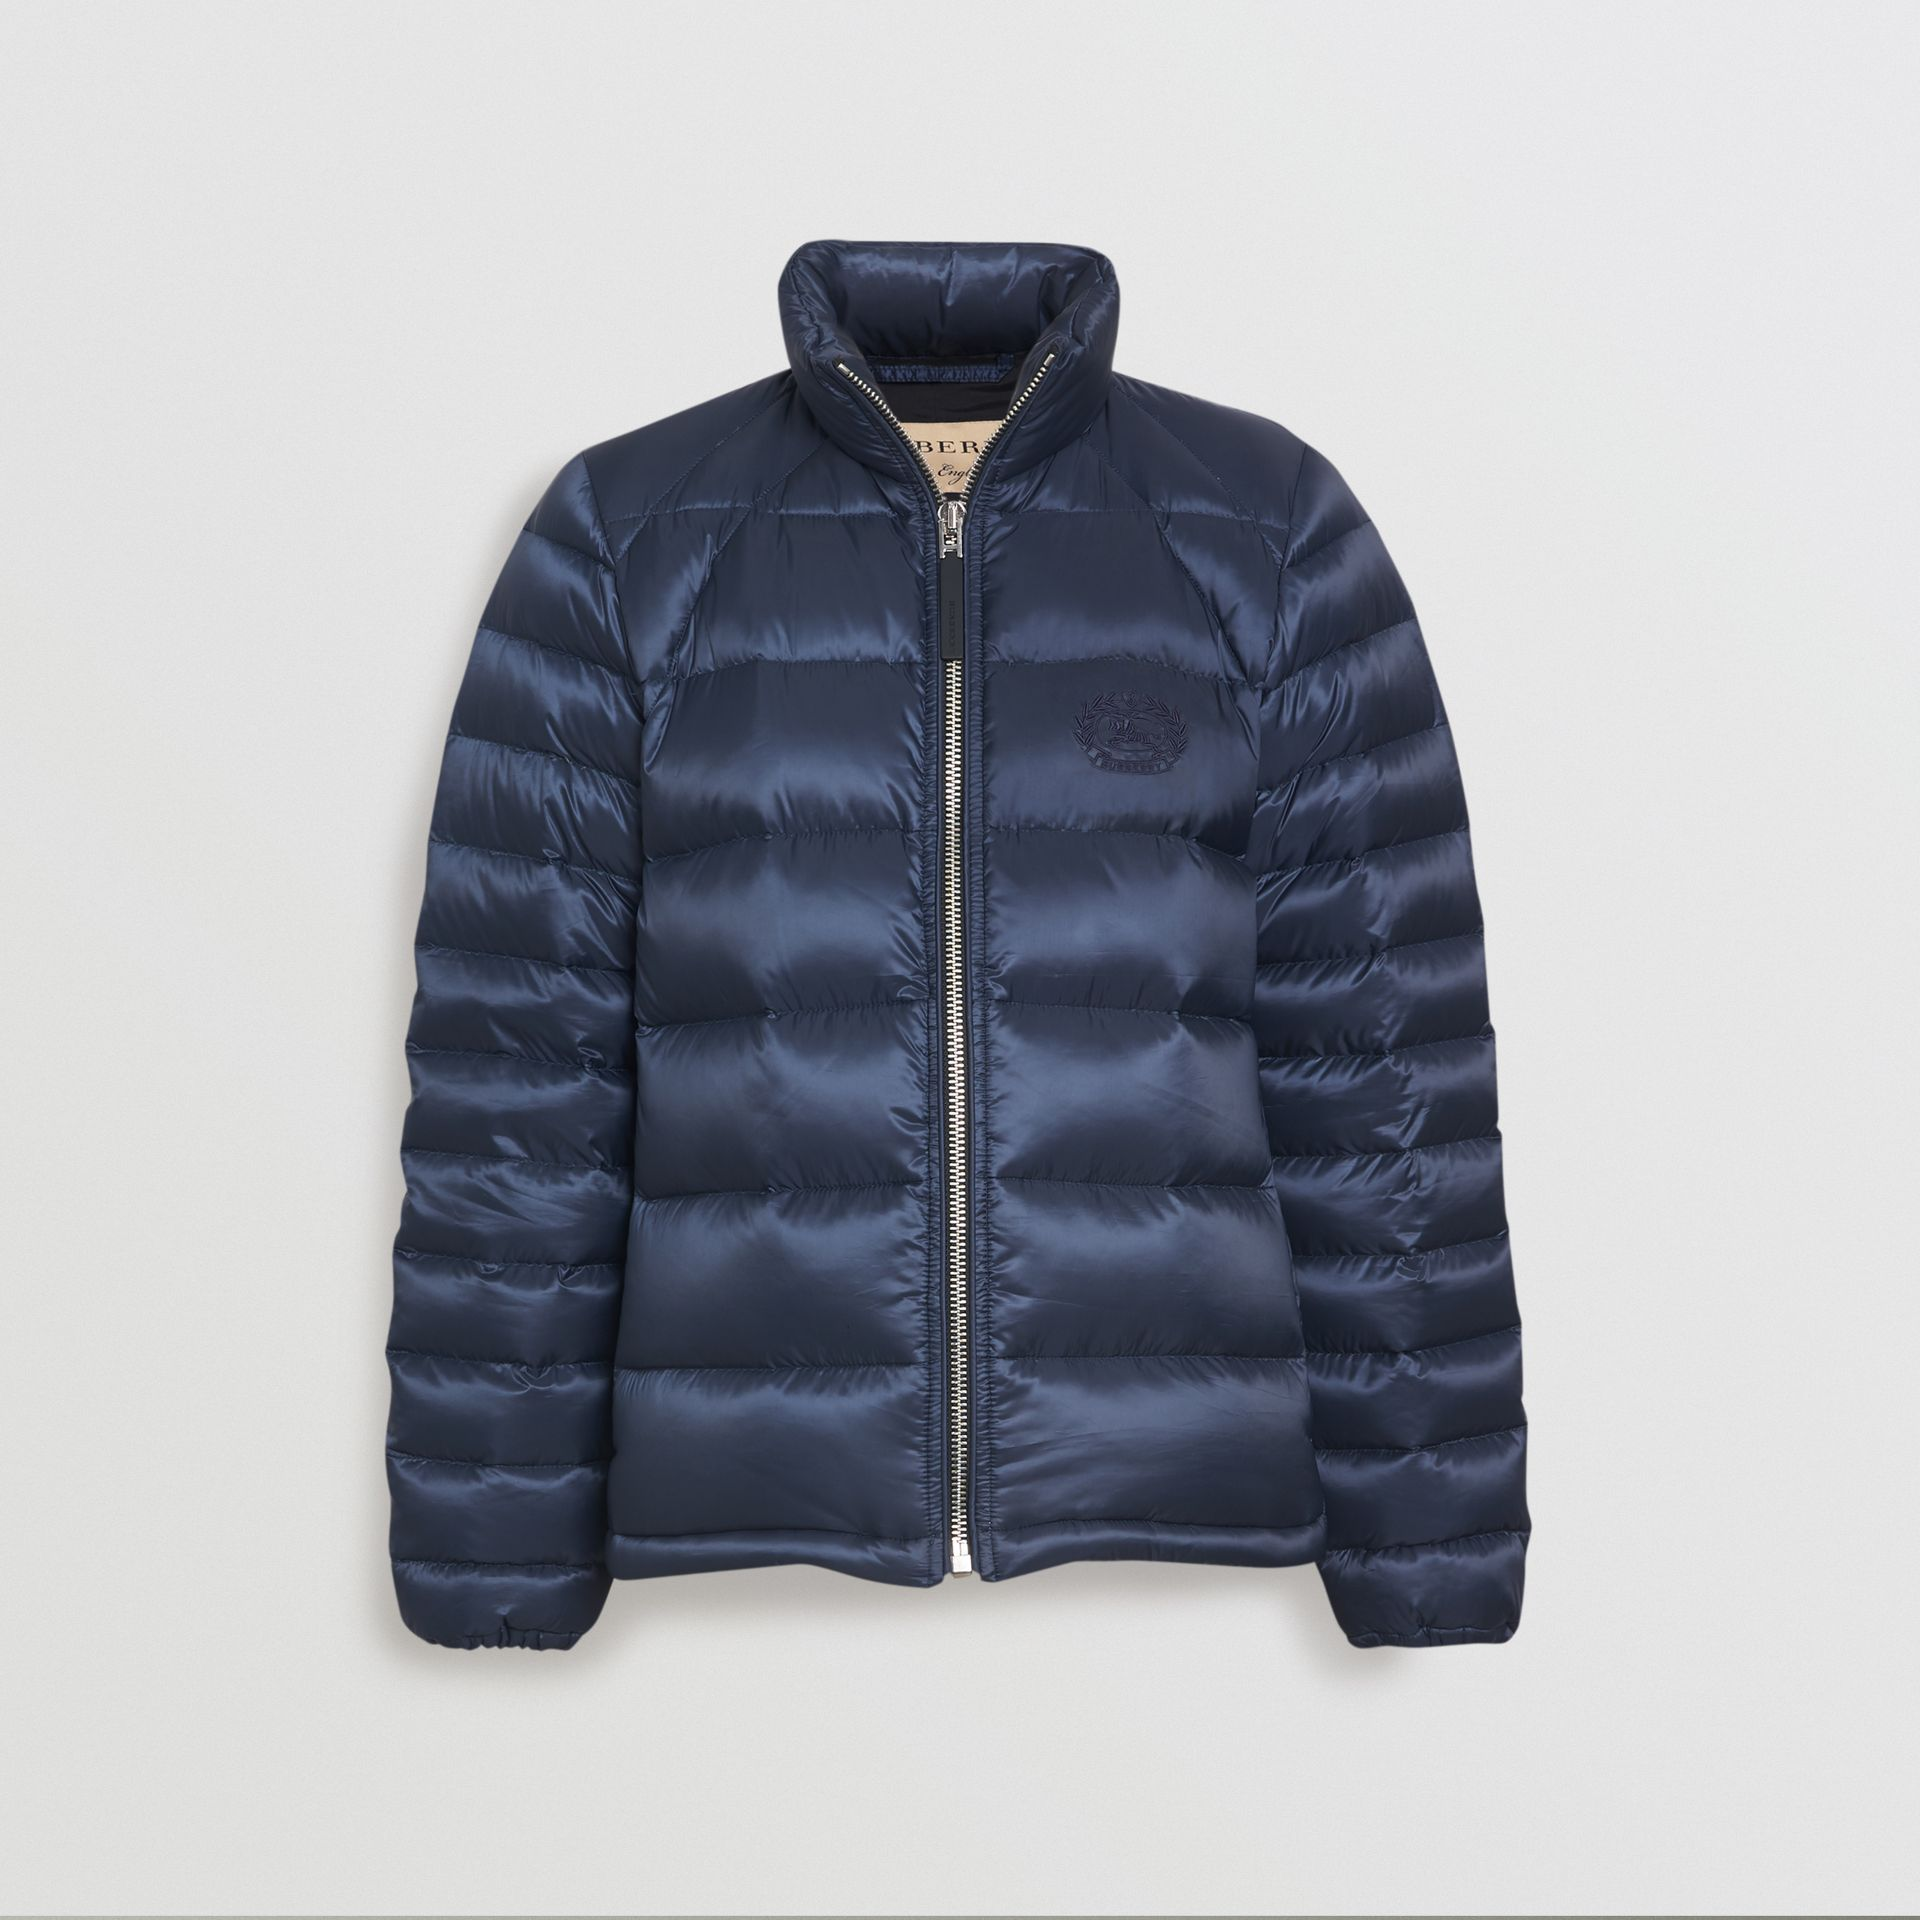 Down-filled Puffer Jacket in Navy - Women | Burberry Australia - gallery image 2